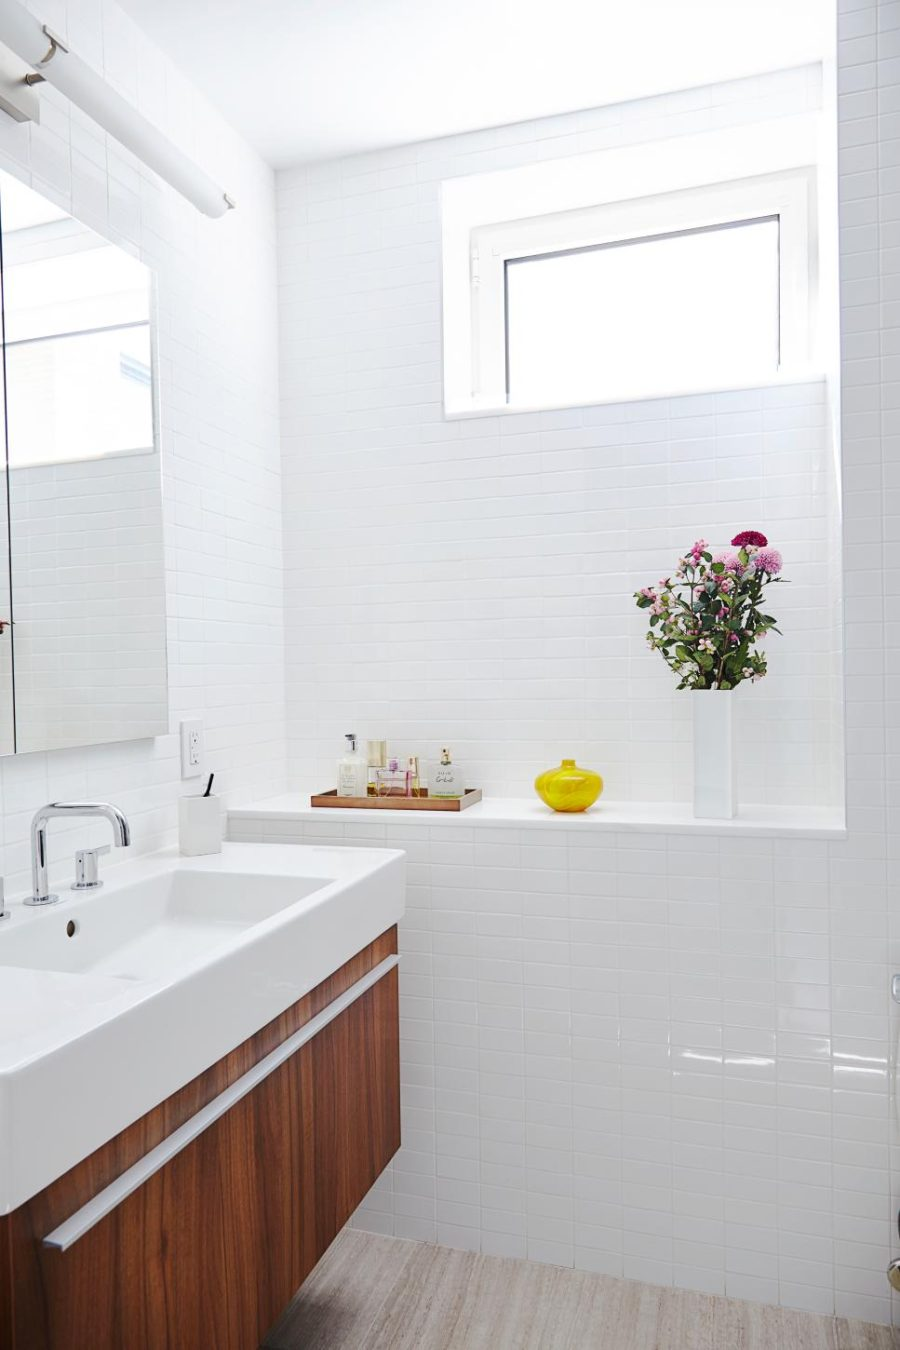 Remodeling Ideas For Small Bathrooms These Small Bathrooms Will Give You Remodeling Ideas